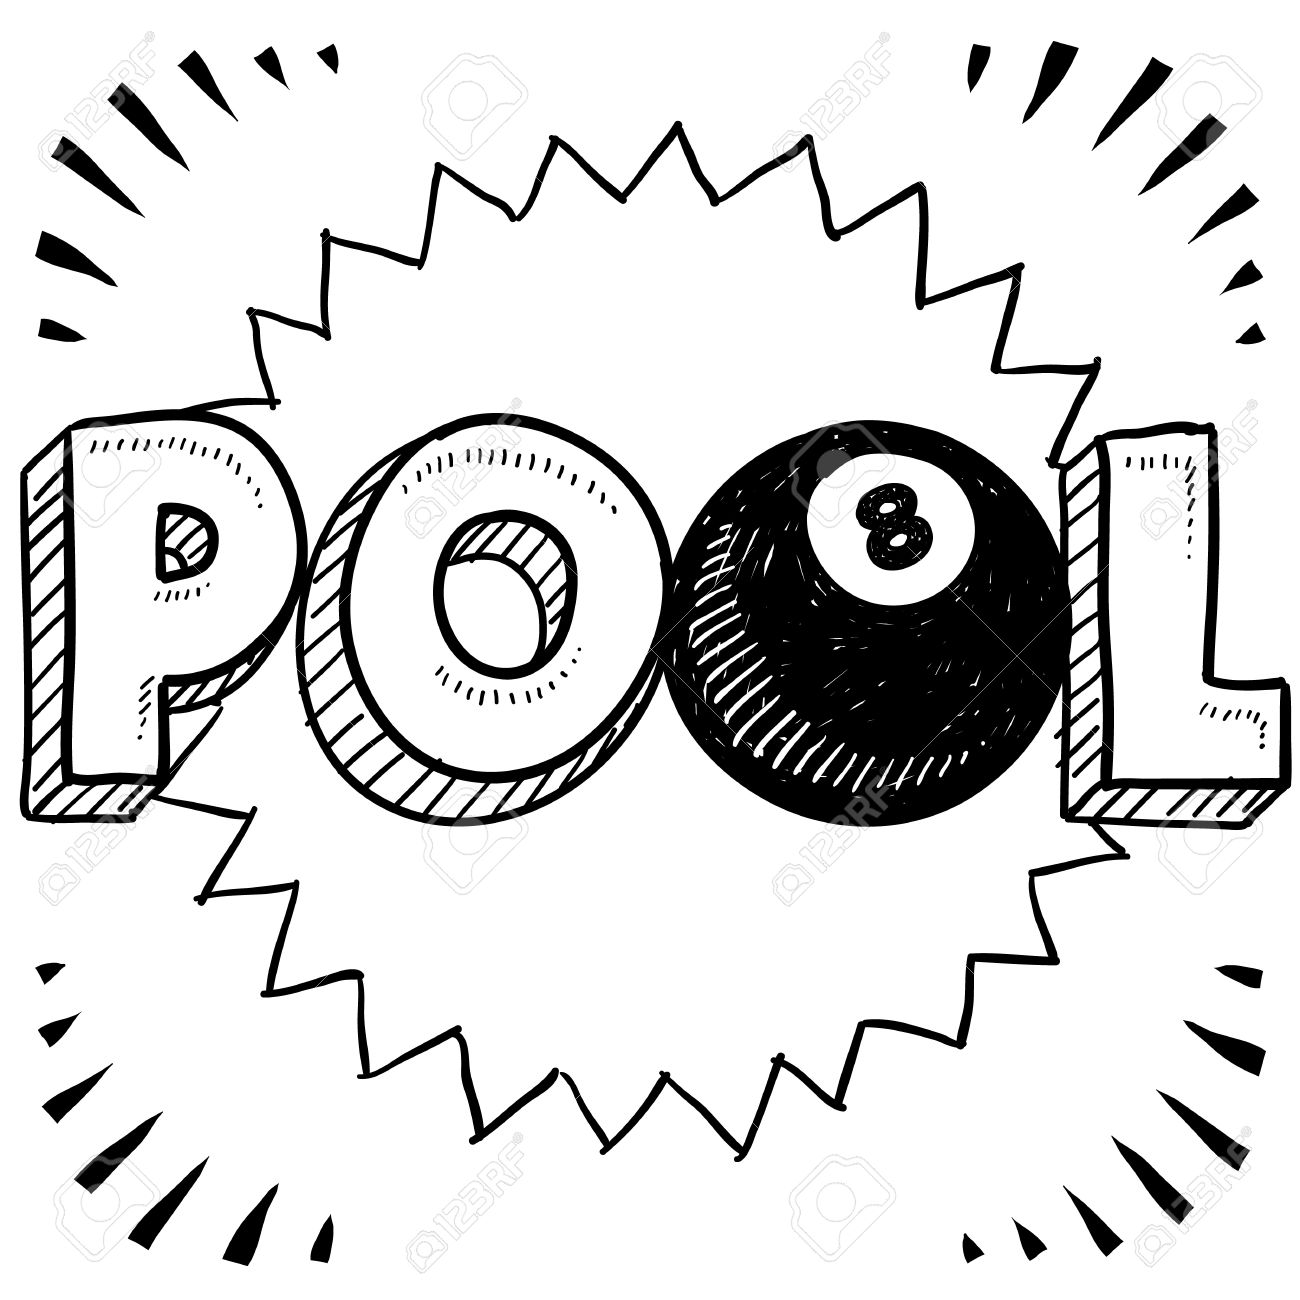 1300x1300 Doodle Style Pool Or Billiards Illustration In Vector Format